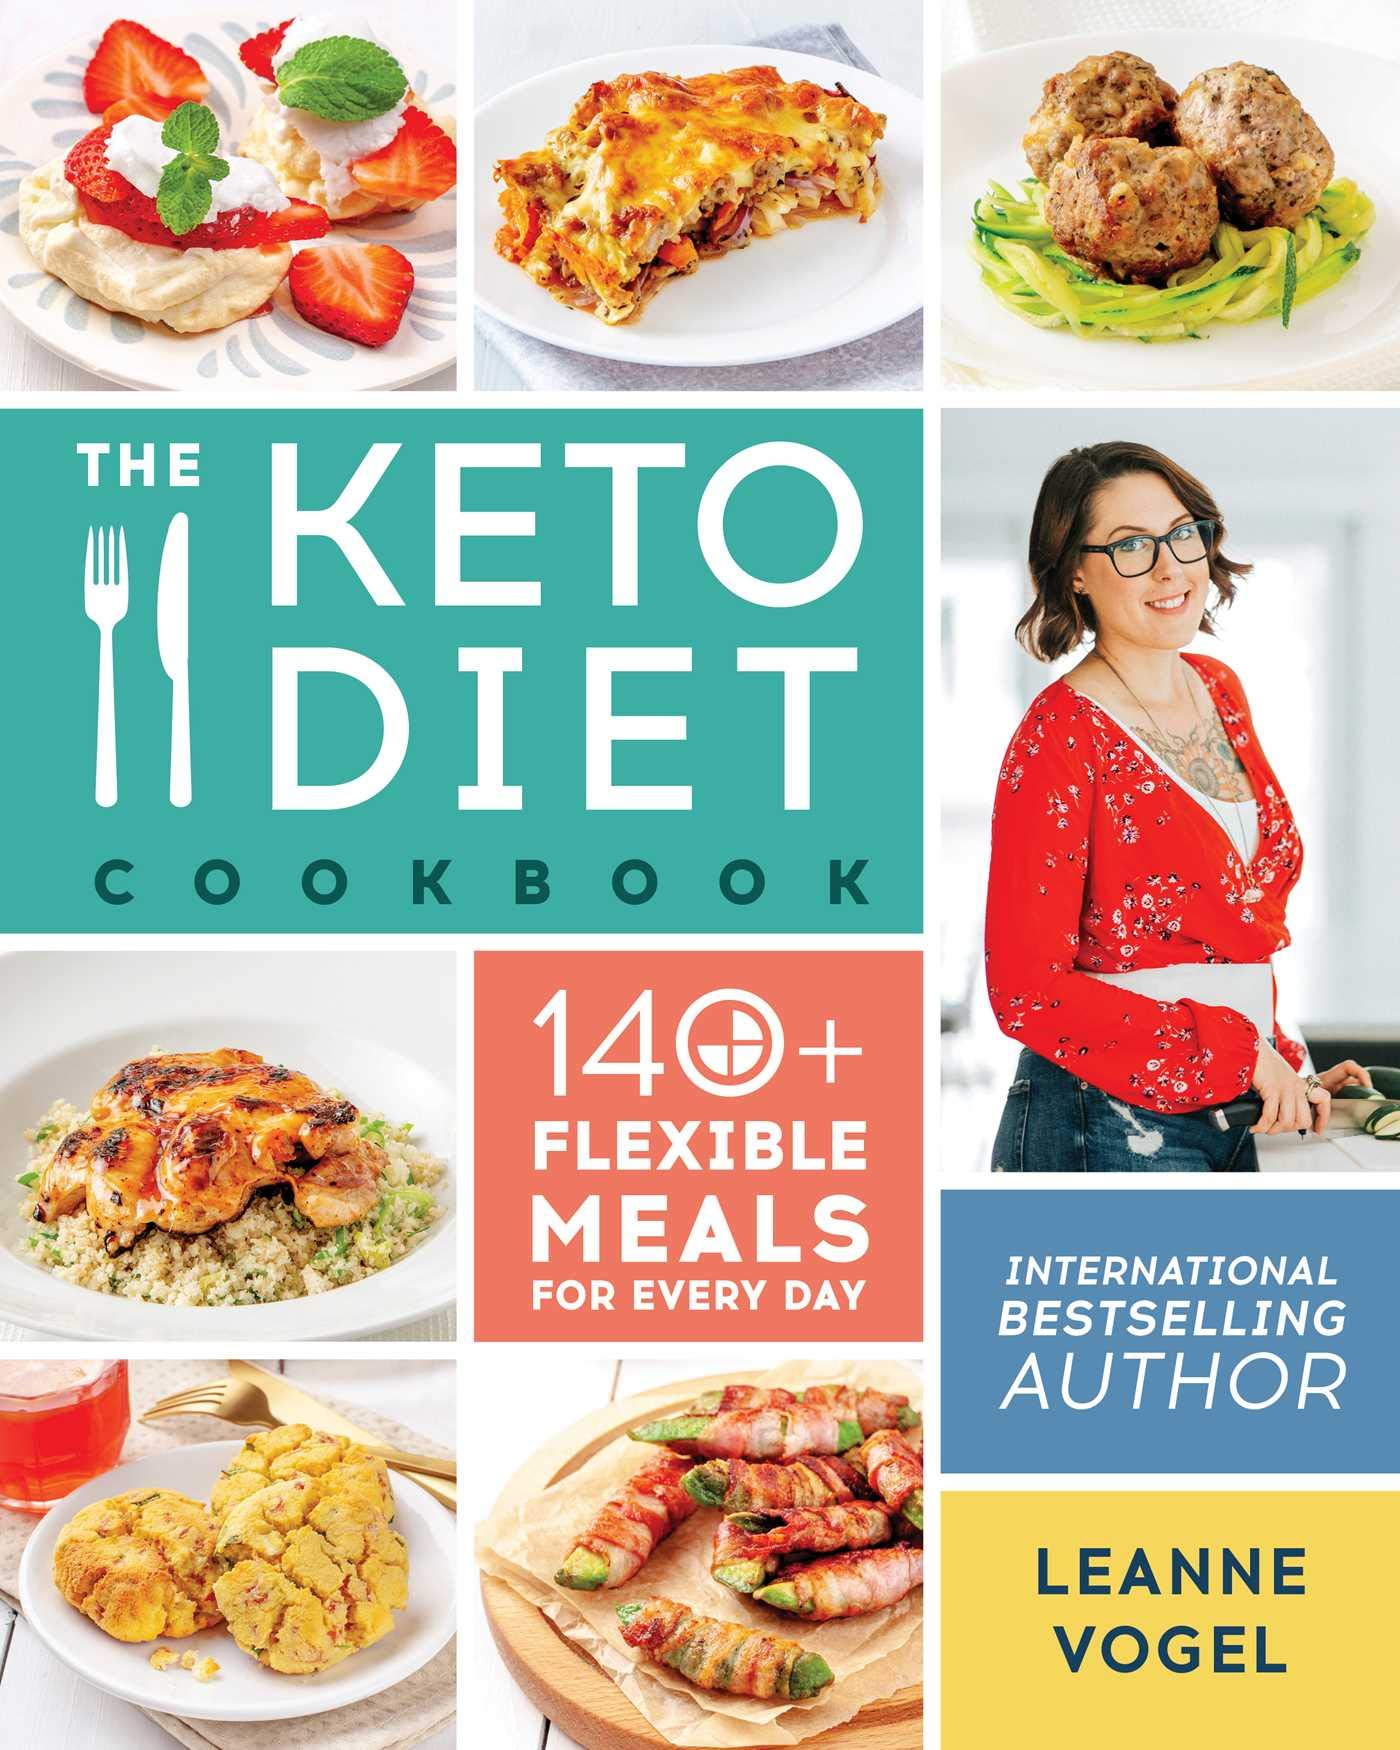 keto diet books recommended on amazon